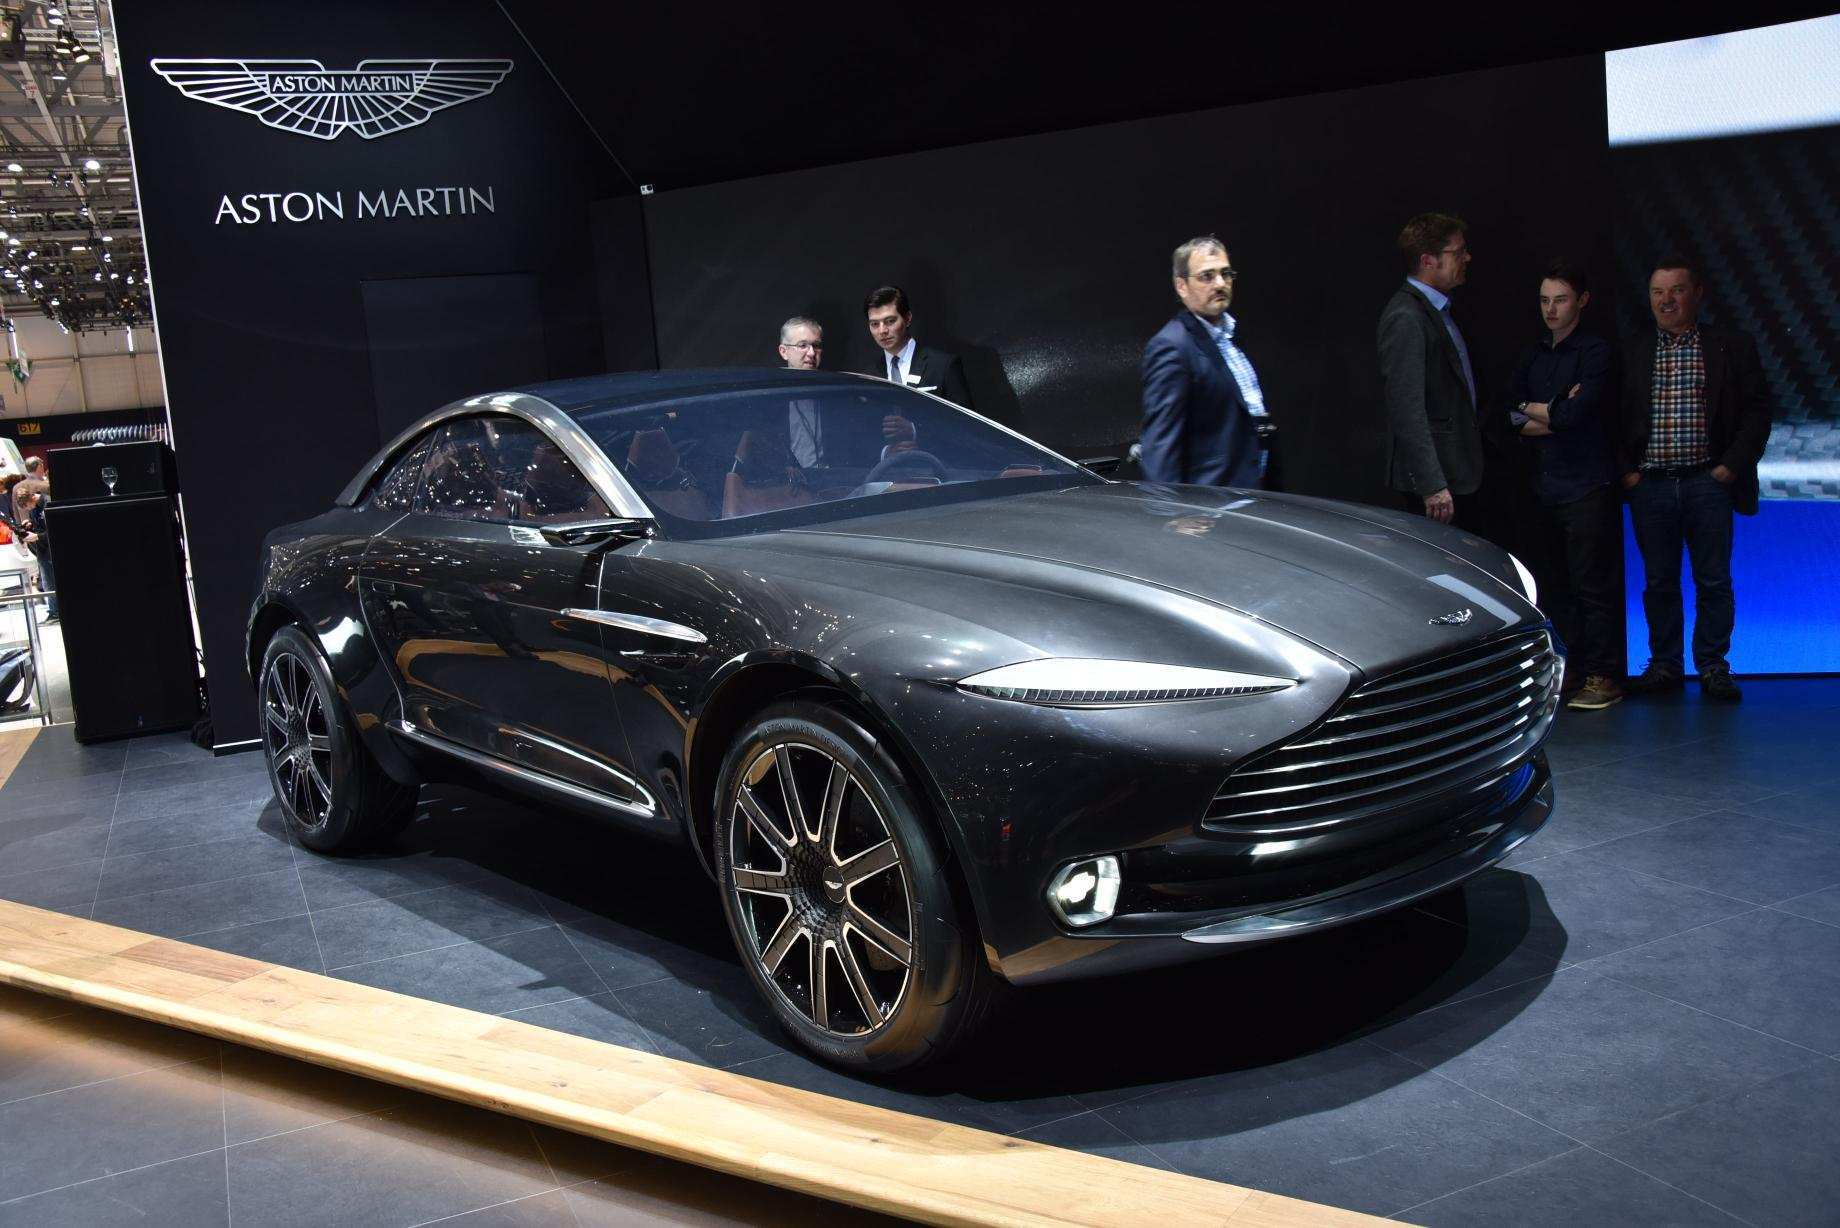 85 Concept of 2019 Aston Martin Suv Prices with 2019 Aston Martin Suv